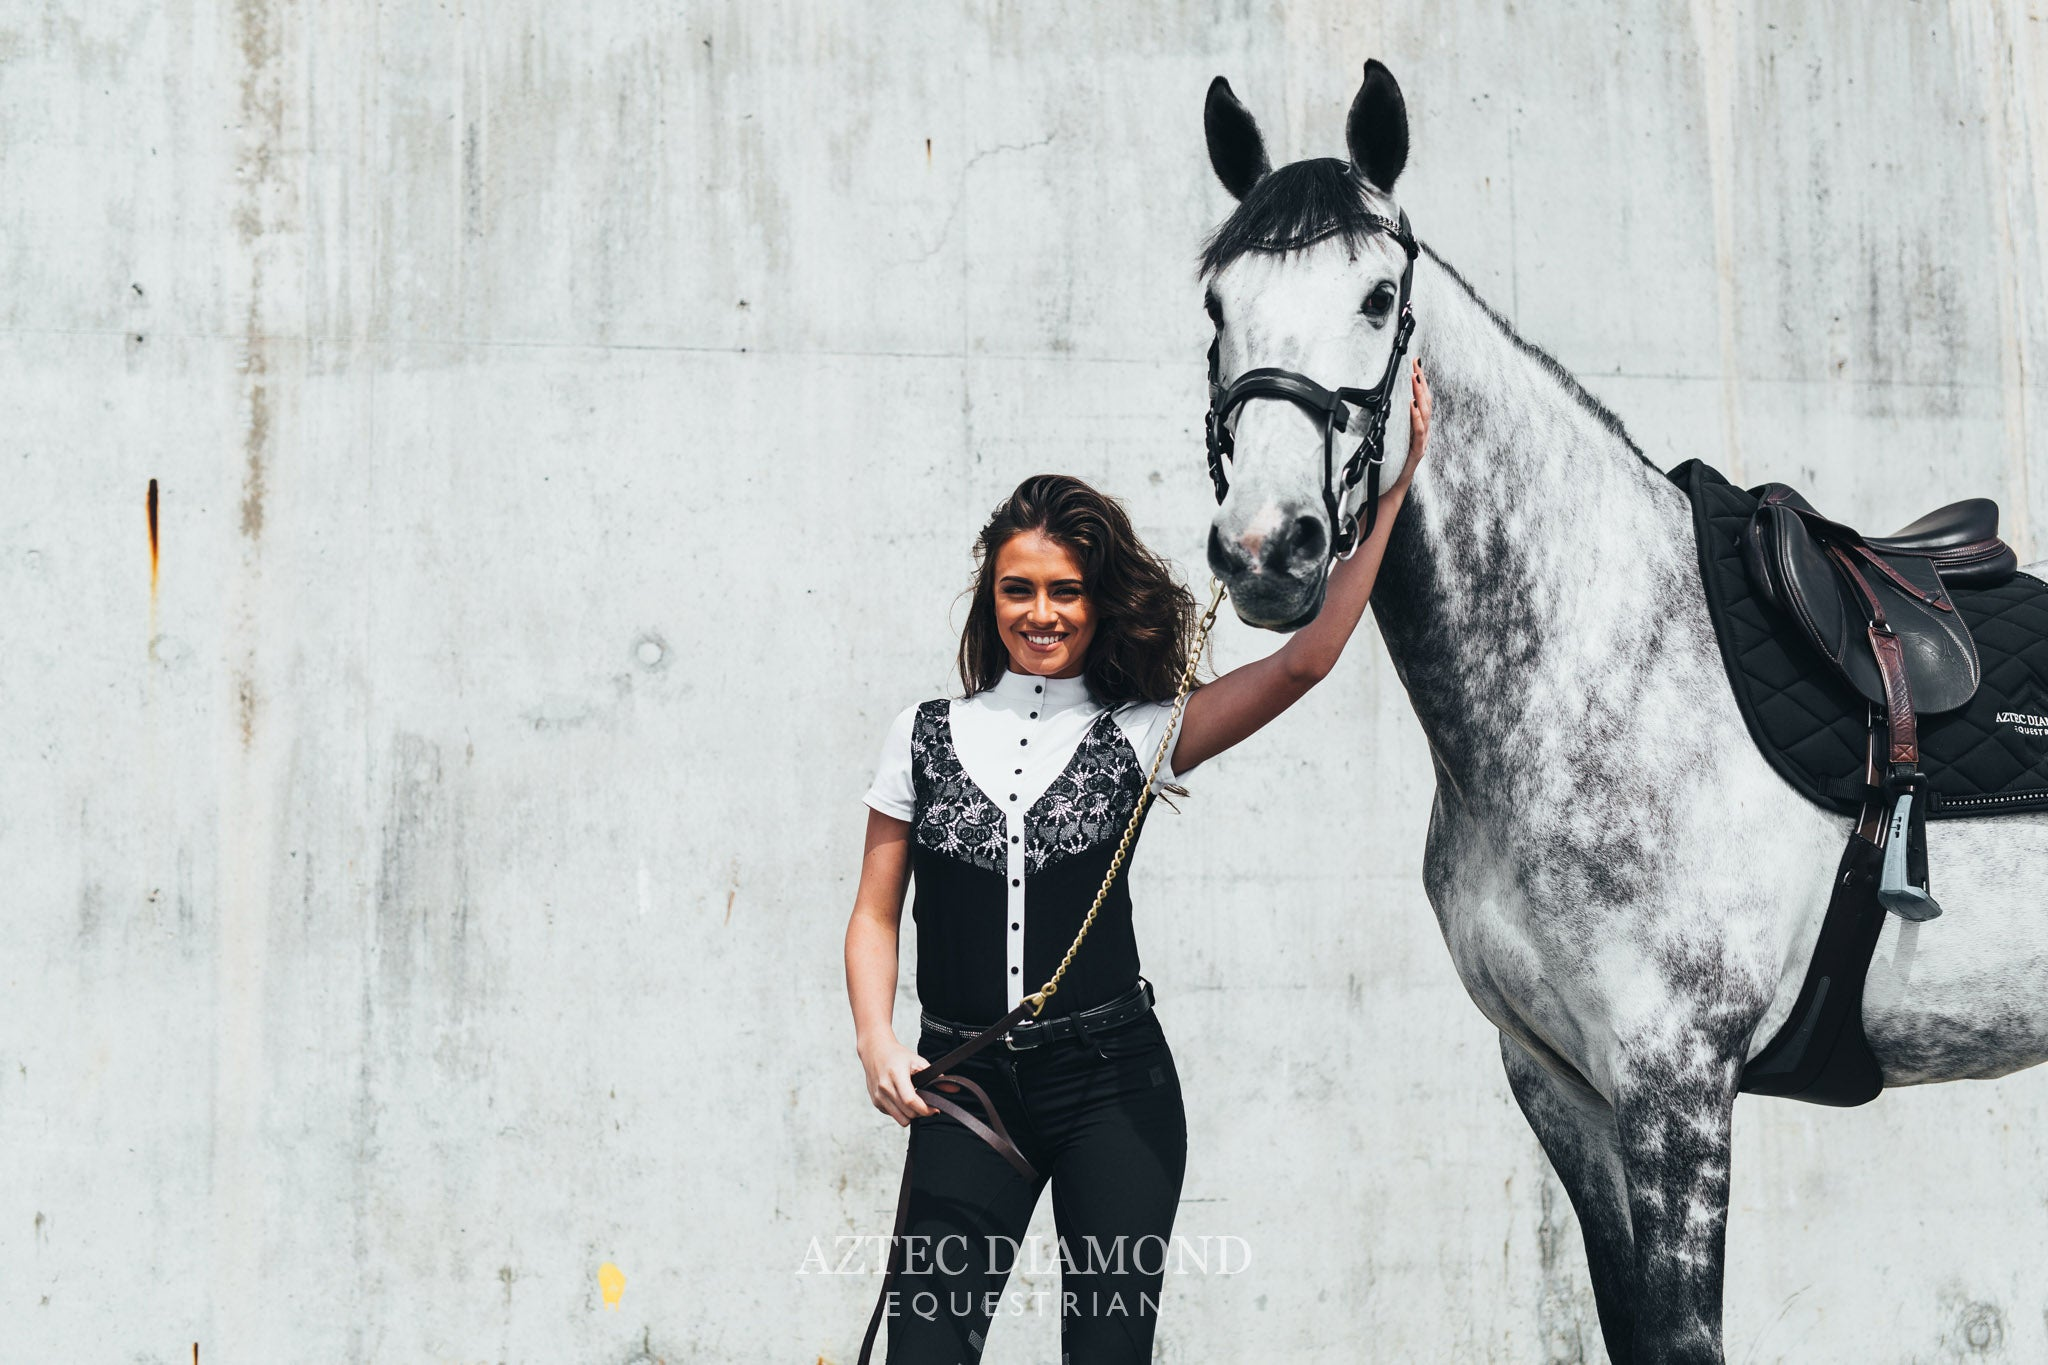 Pre S 16 Lookbook Aztec Diamond Equestrian Uk Limited